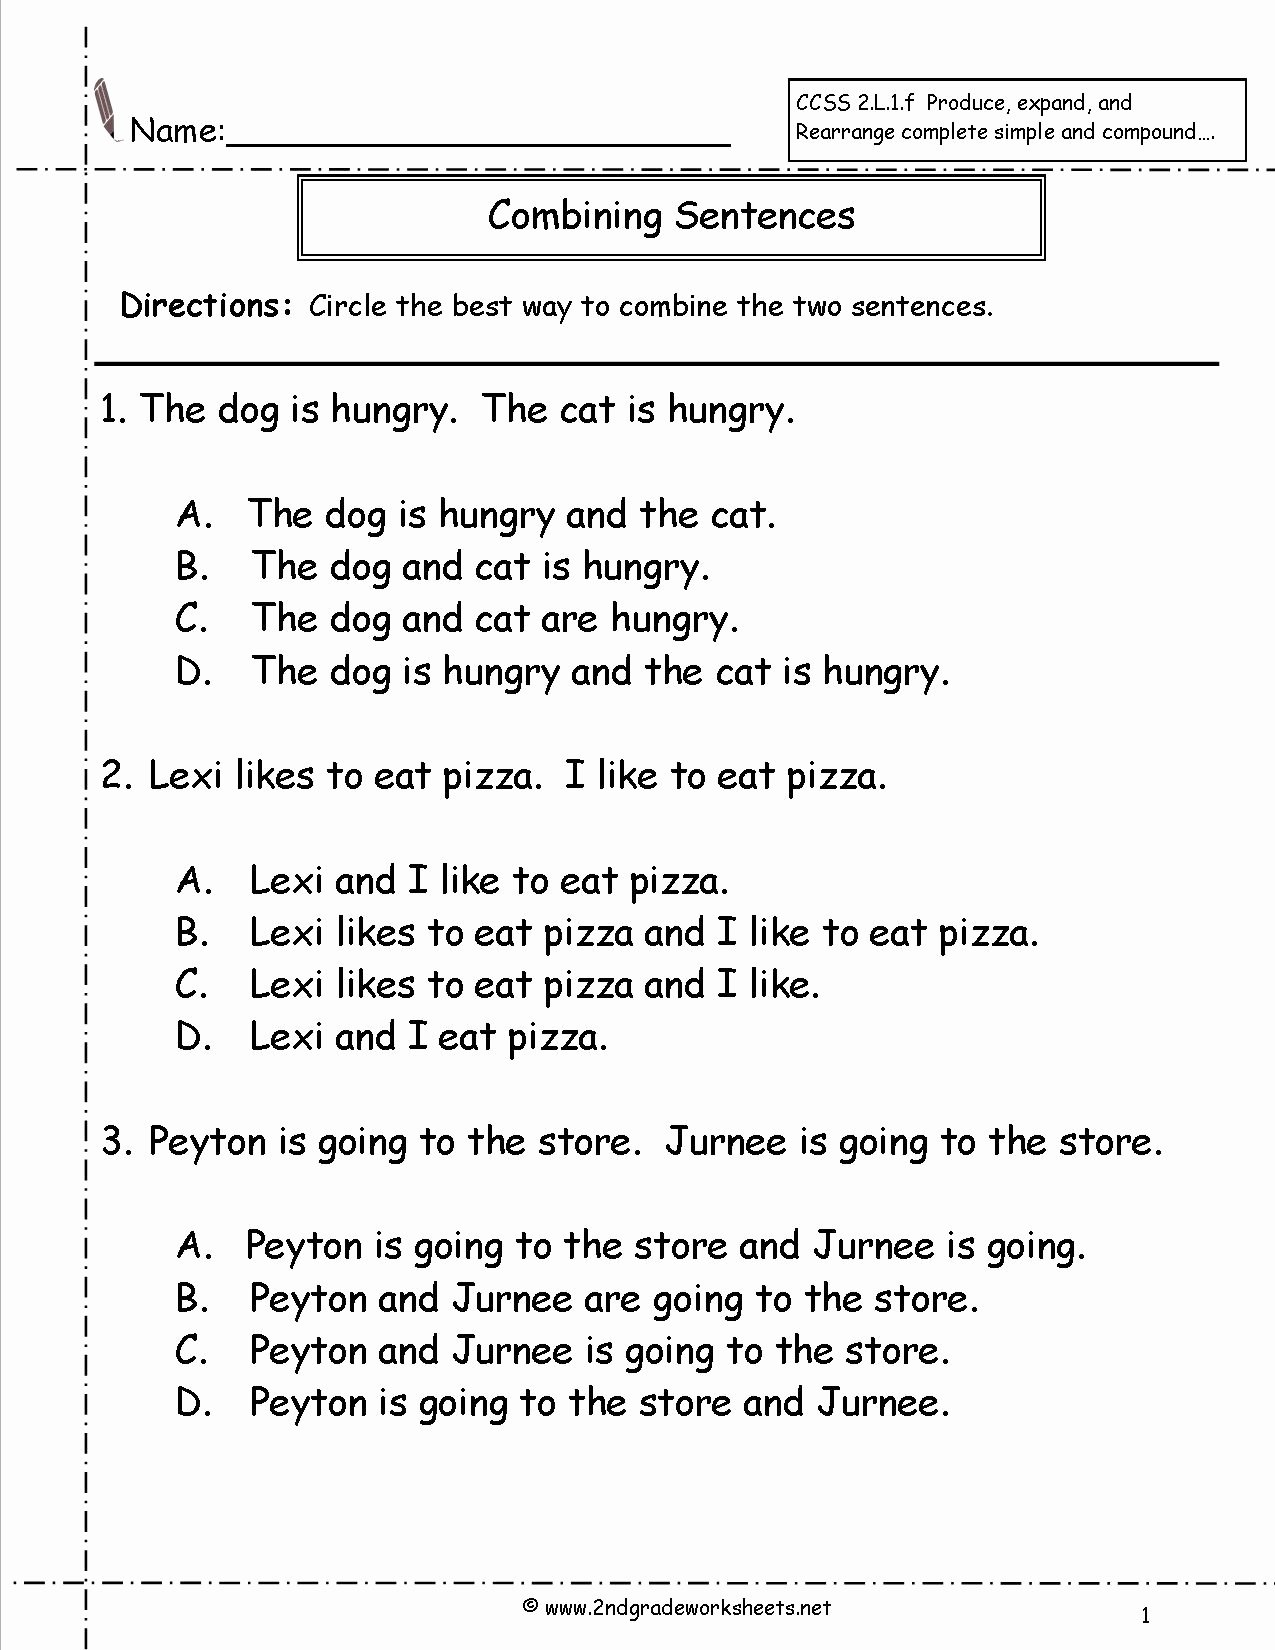 Simple and Compound Sentence Worksheet Lovely Second Grade Sentences Worksheets Ccss 2 L 1 F Worksheets